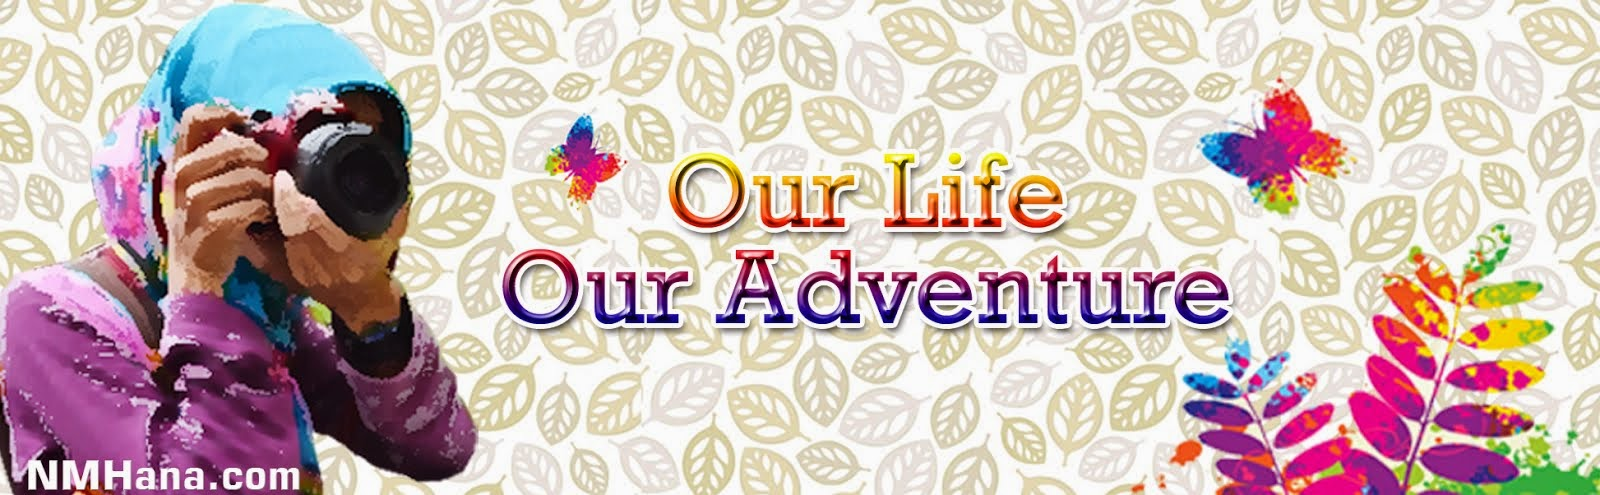 OUR LIFE OUR ADVENTURE